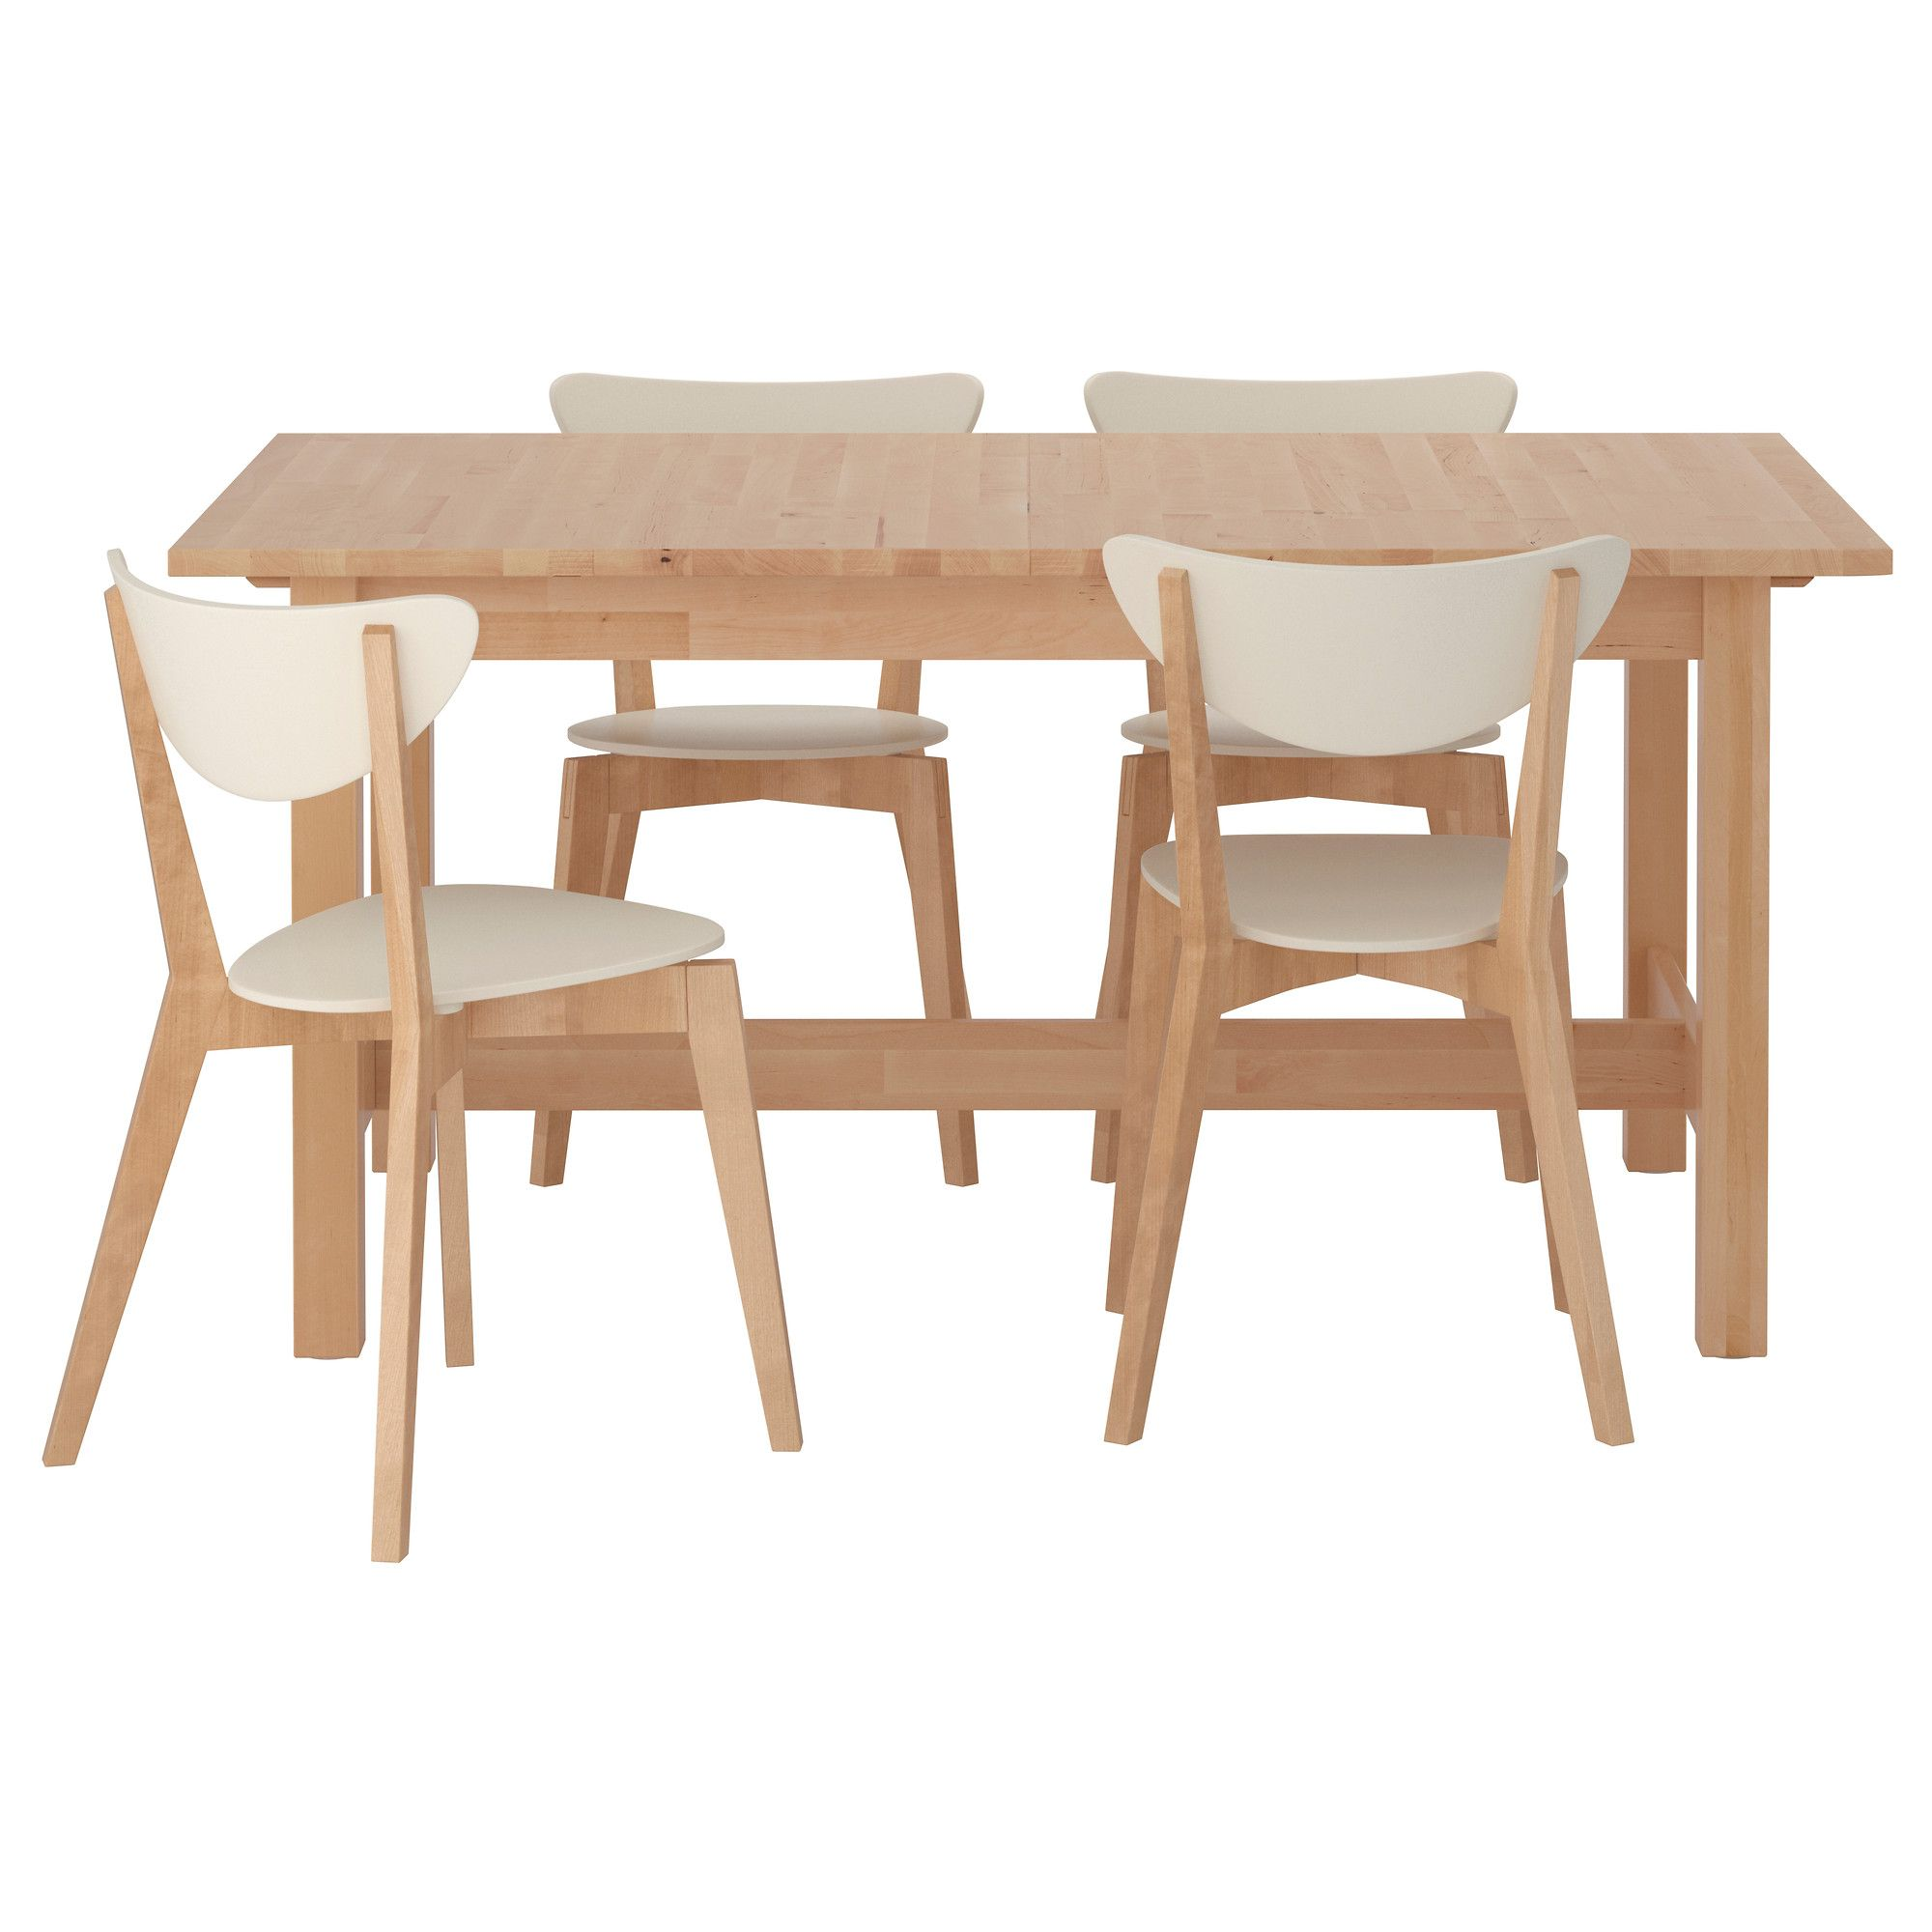 Norden nordmyra table et 4 chaises 319 ikea for the home pinterest - Ikea table de cuisine et chaise ...